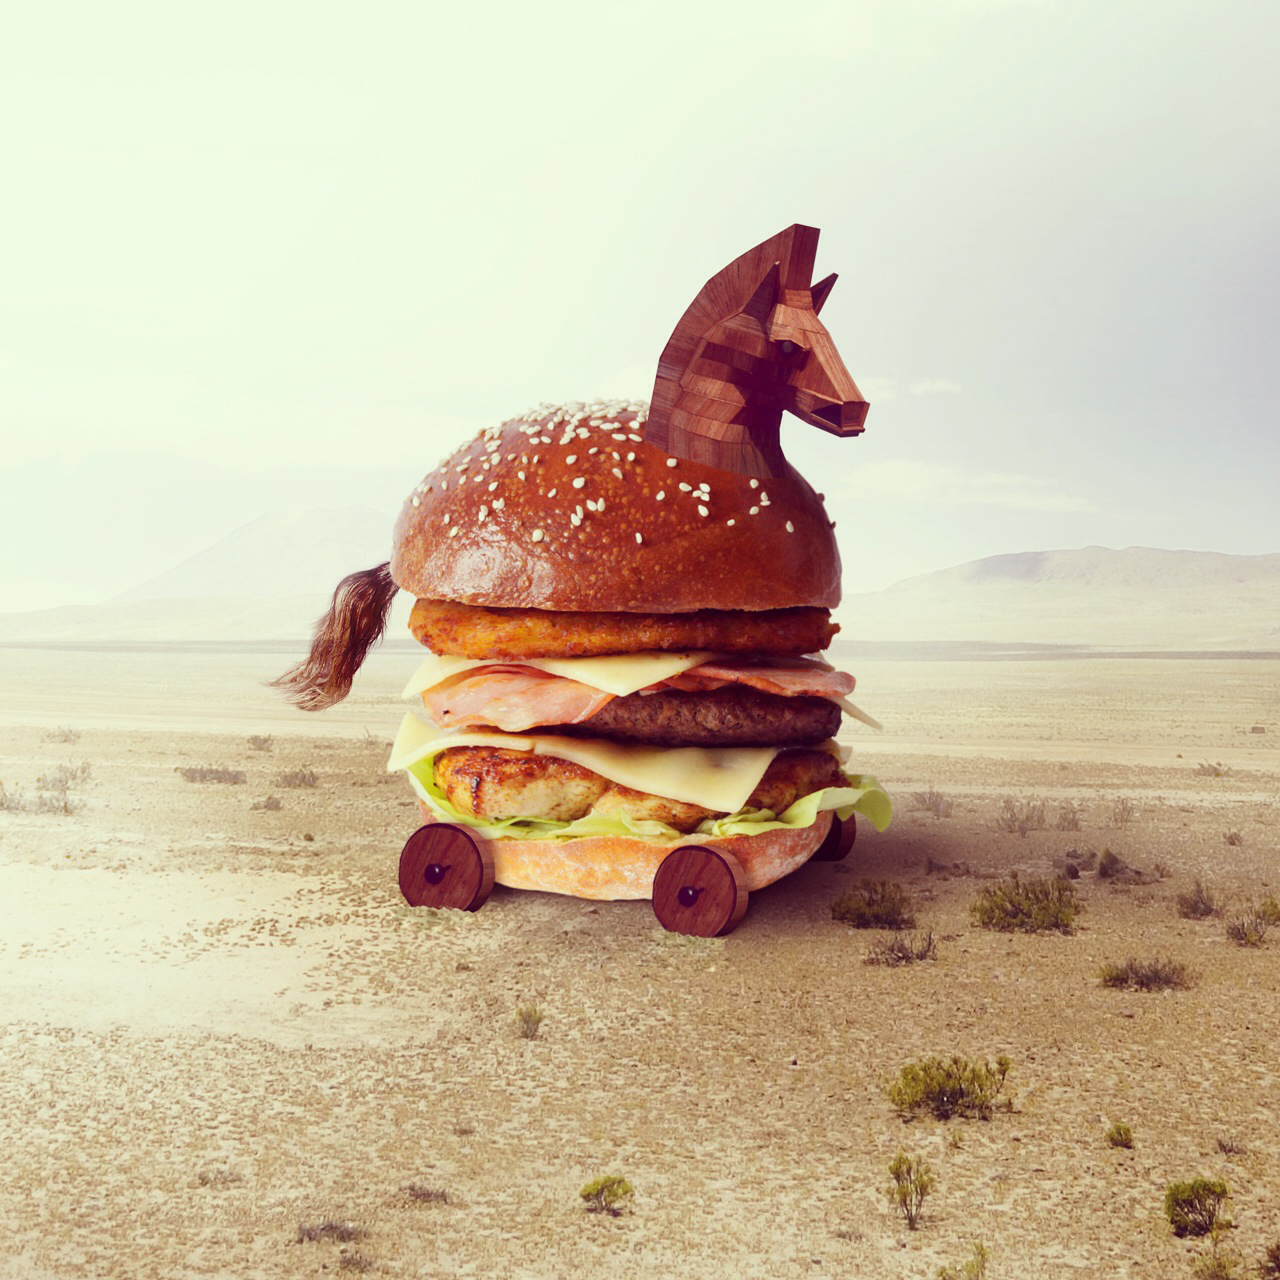 fatandfuriousburger